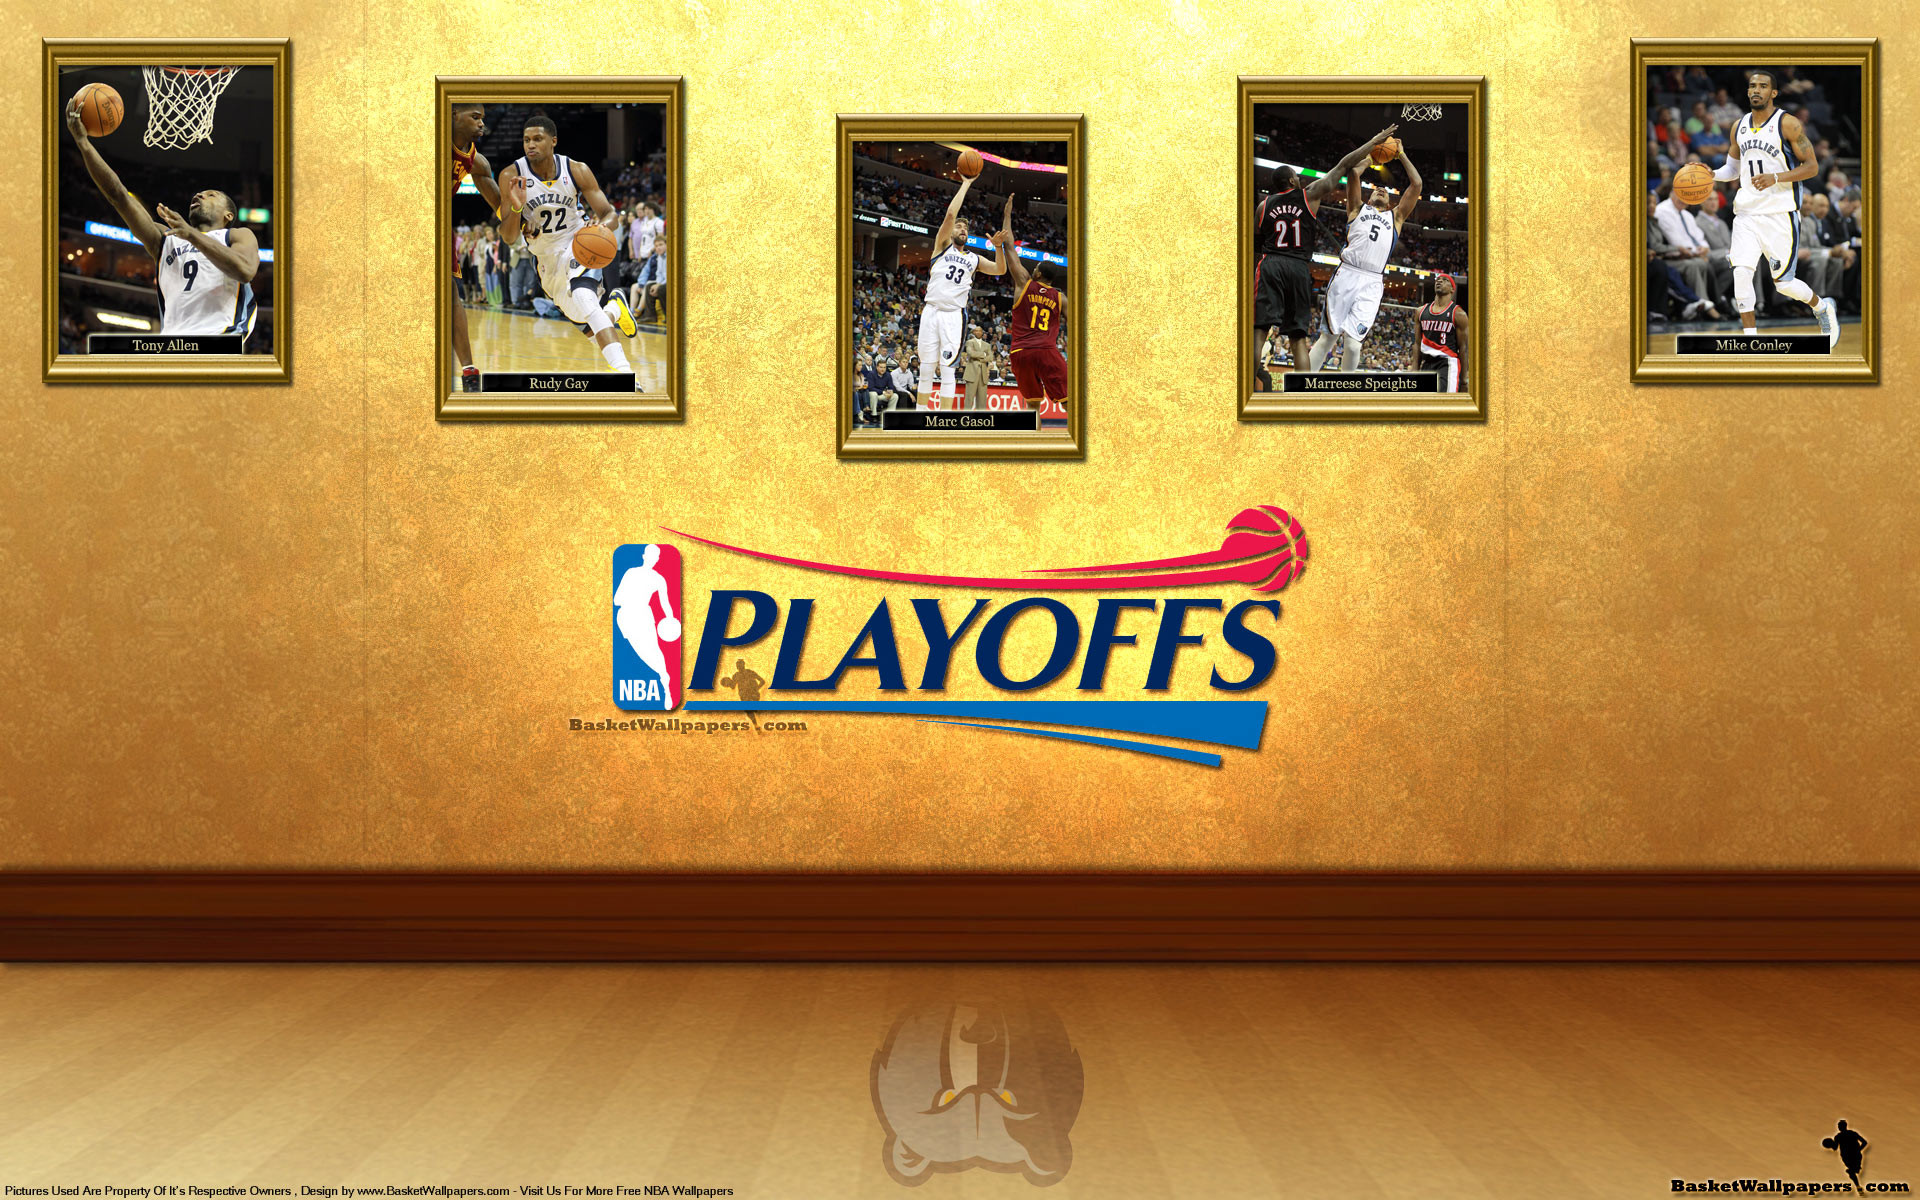 1920x1200 Memphis Grizzlies See You In Playoffs 2012 Wallpaper